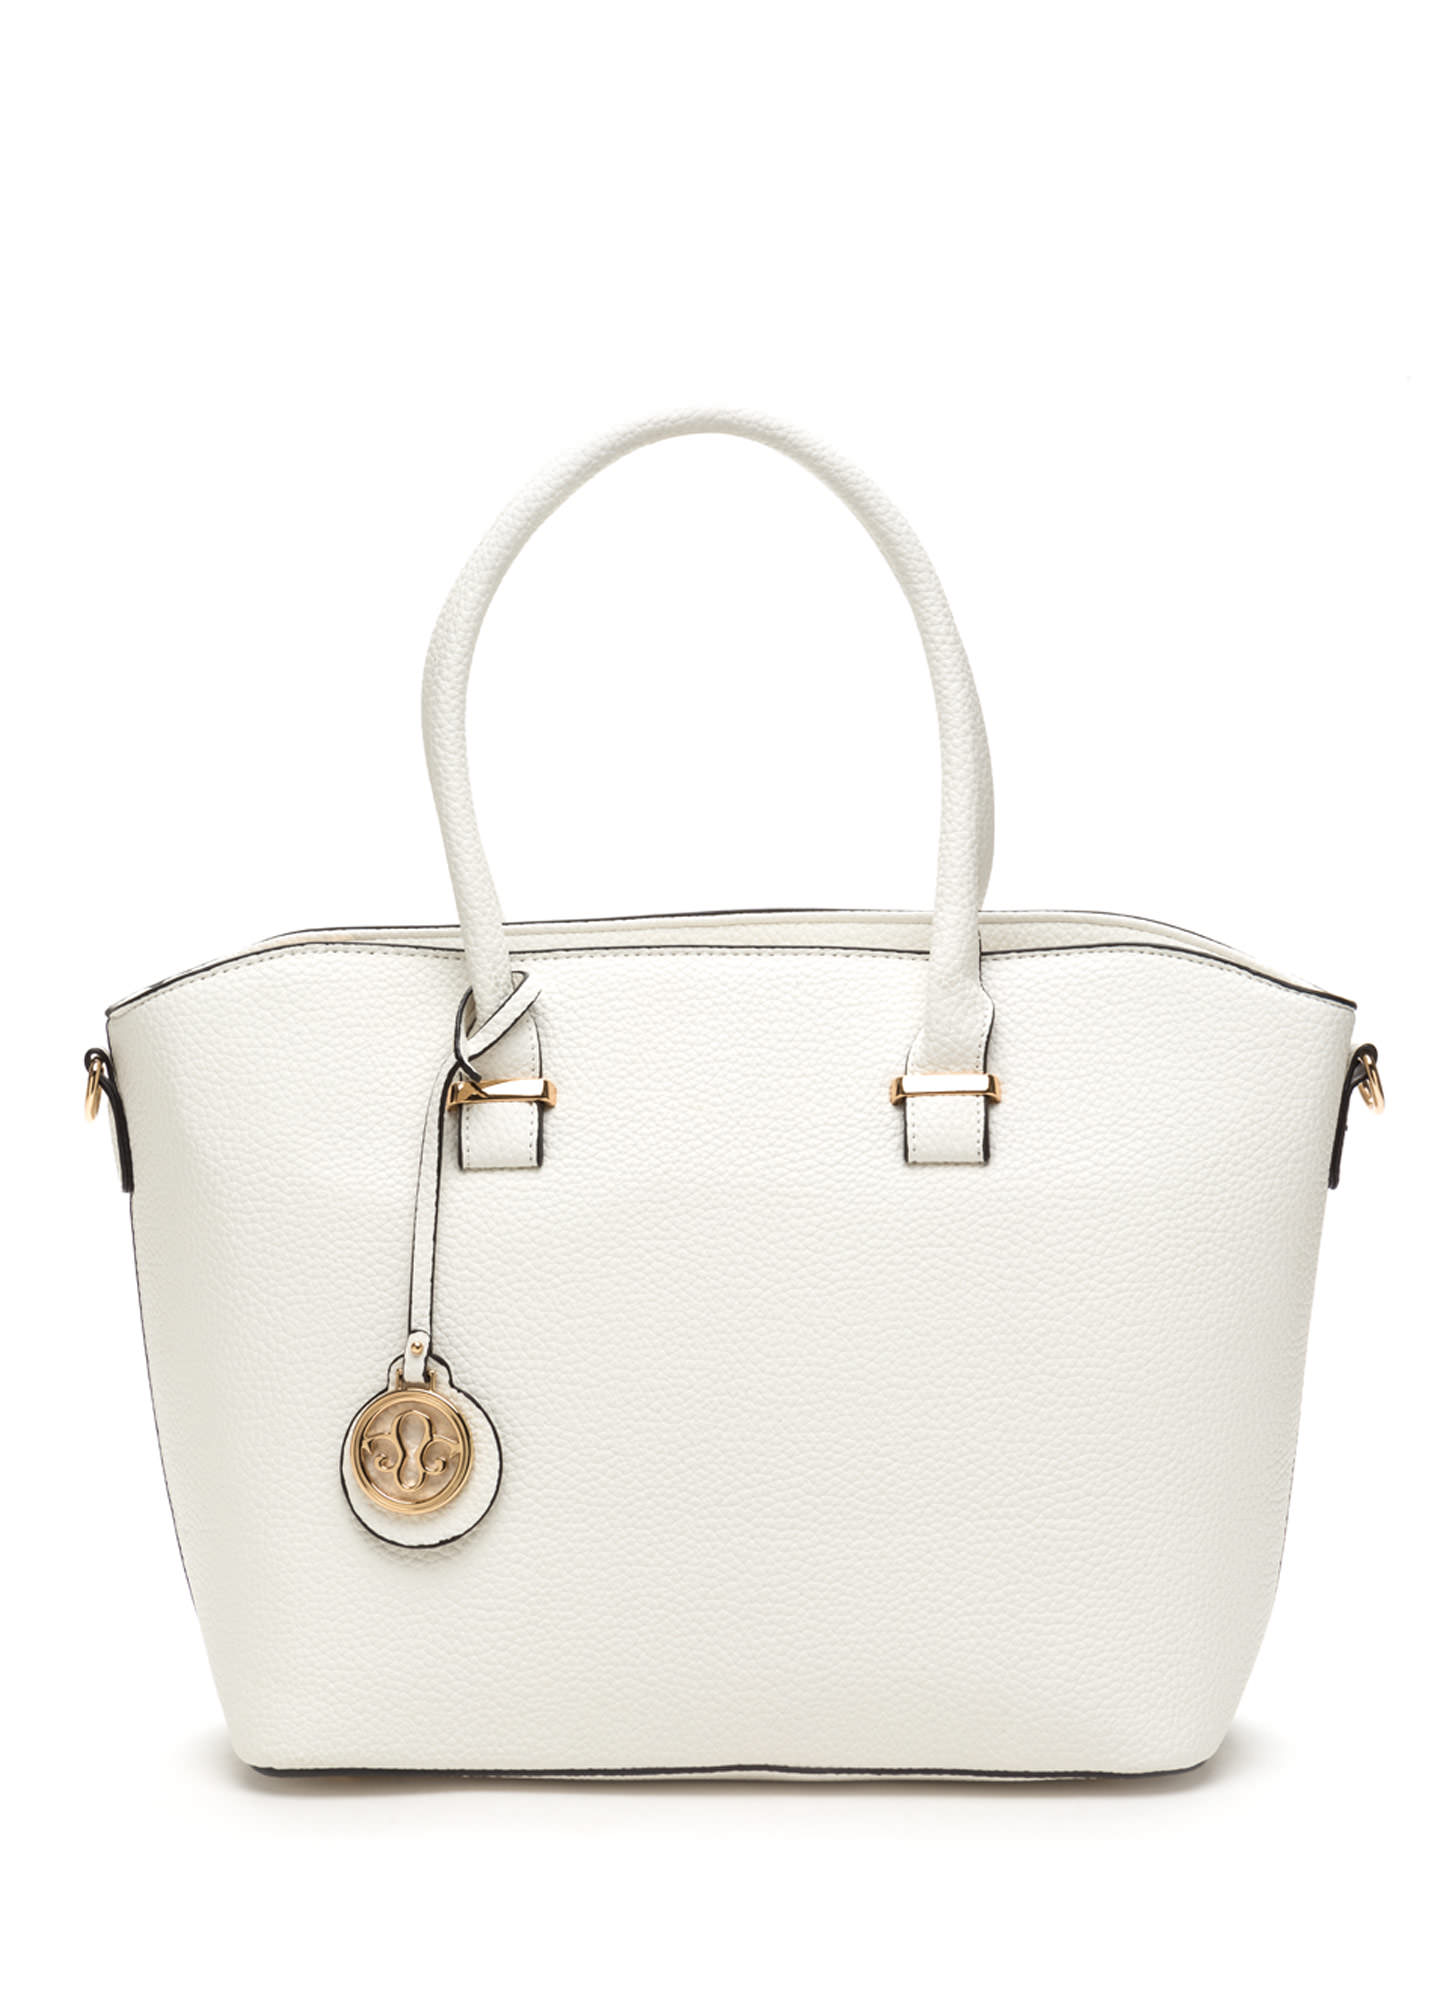 First Lady Faux Leather Bag Set WHITE